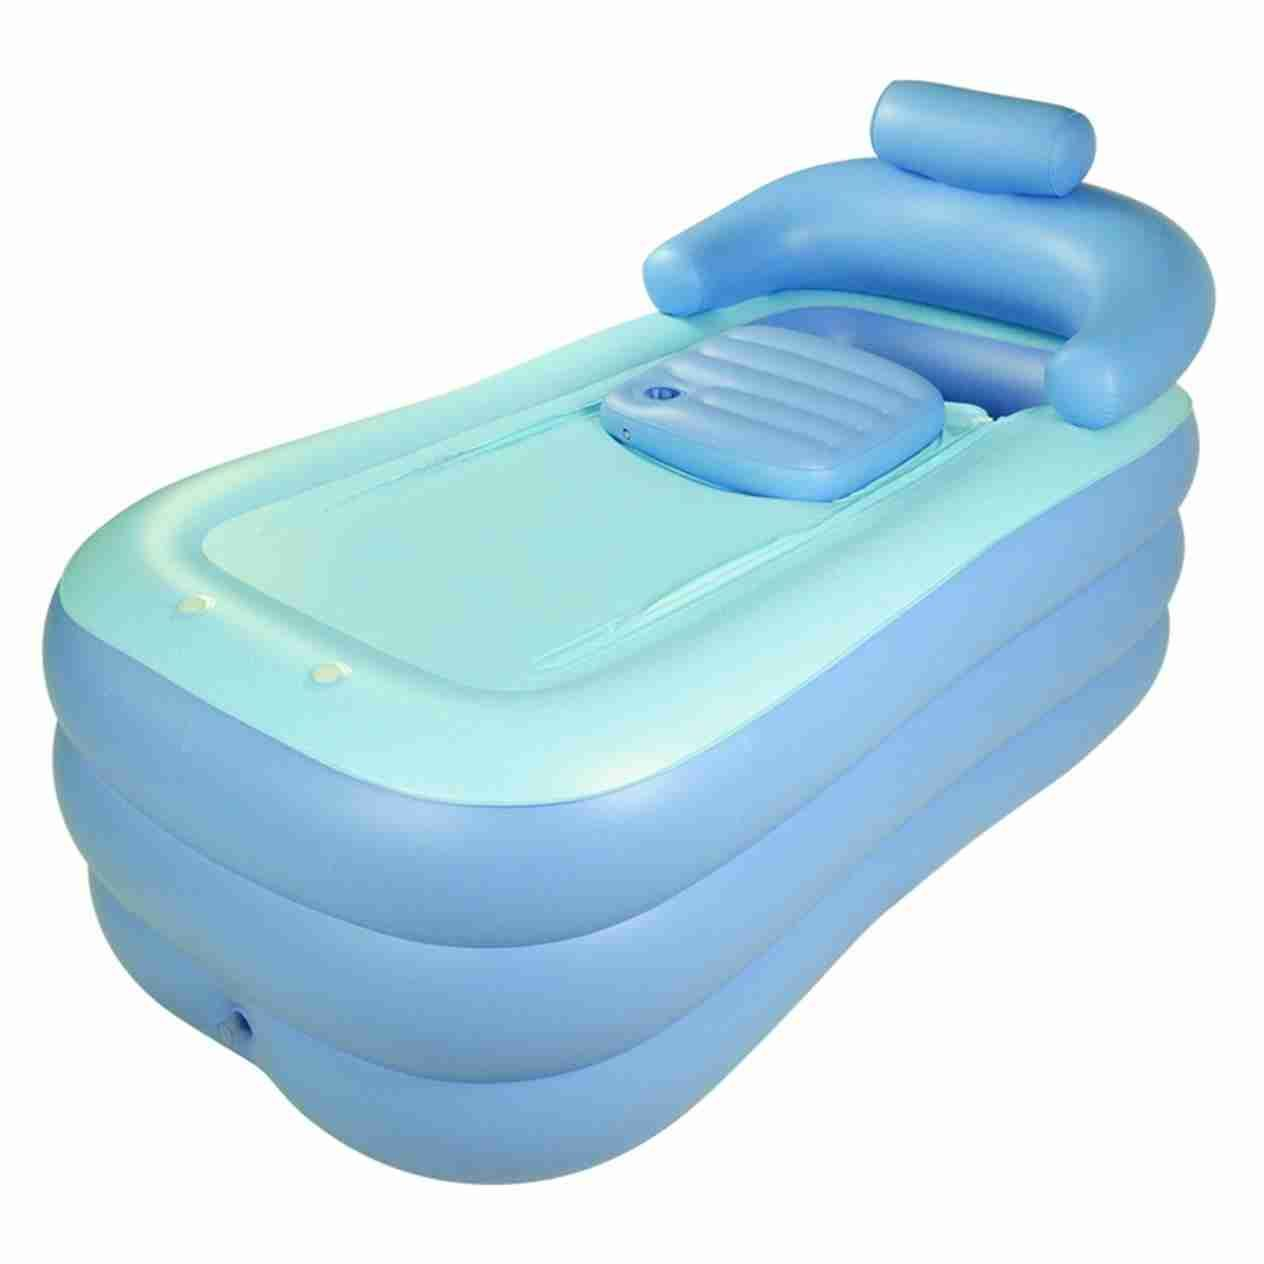 New post Trending-portable jacuzzi for bathtubs-Visit-entermp3.info ...